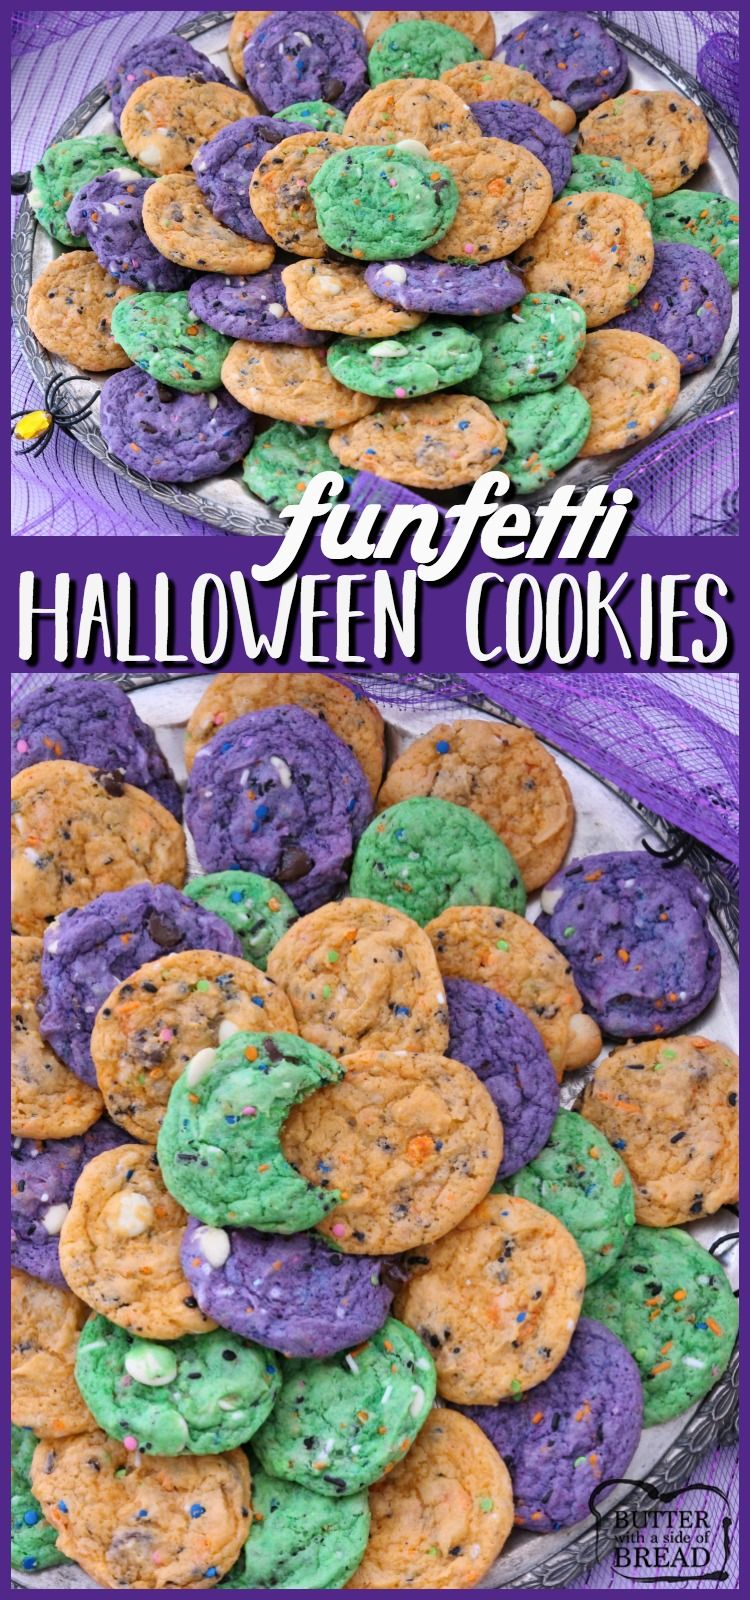 funfetti halloween cookies are tasty spooky treats made colorful with festive sprinkles baked into each halloween cookie recipeseasy